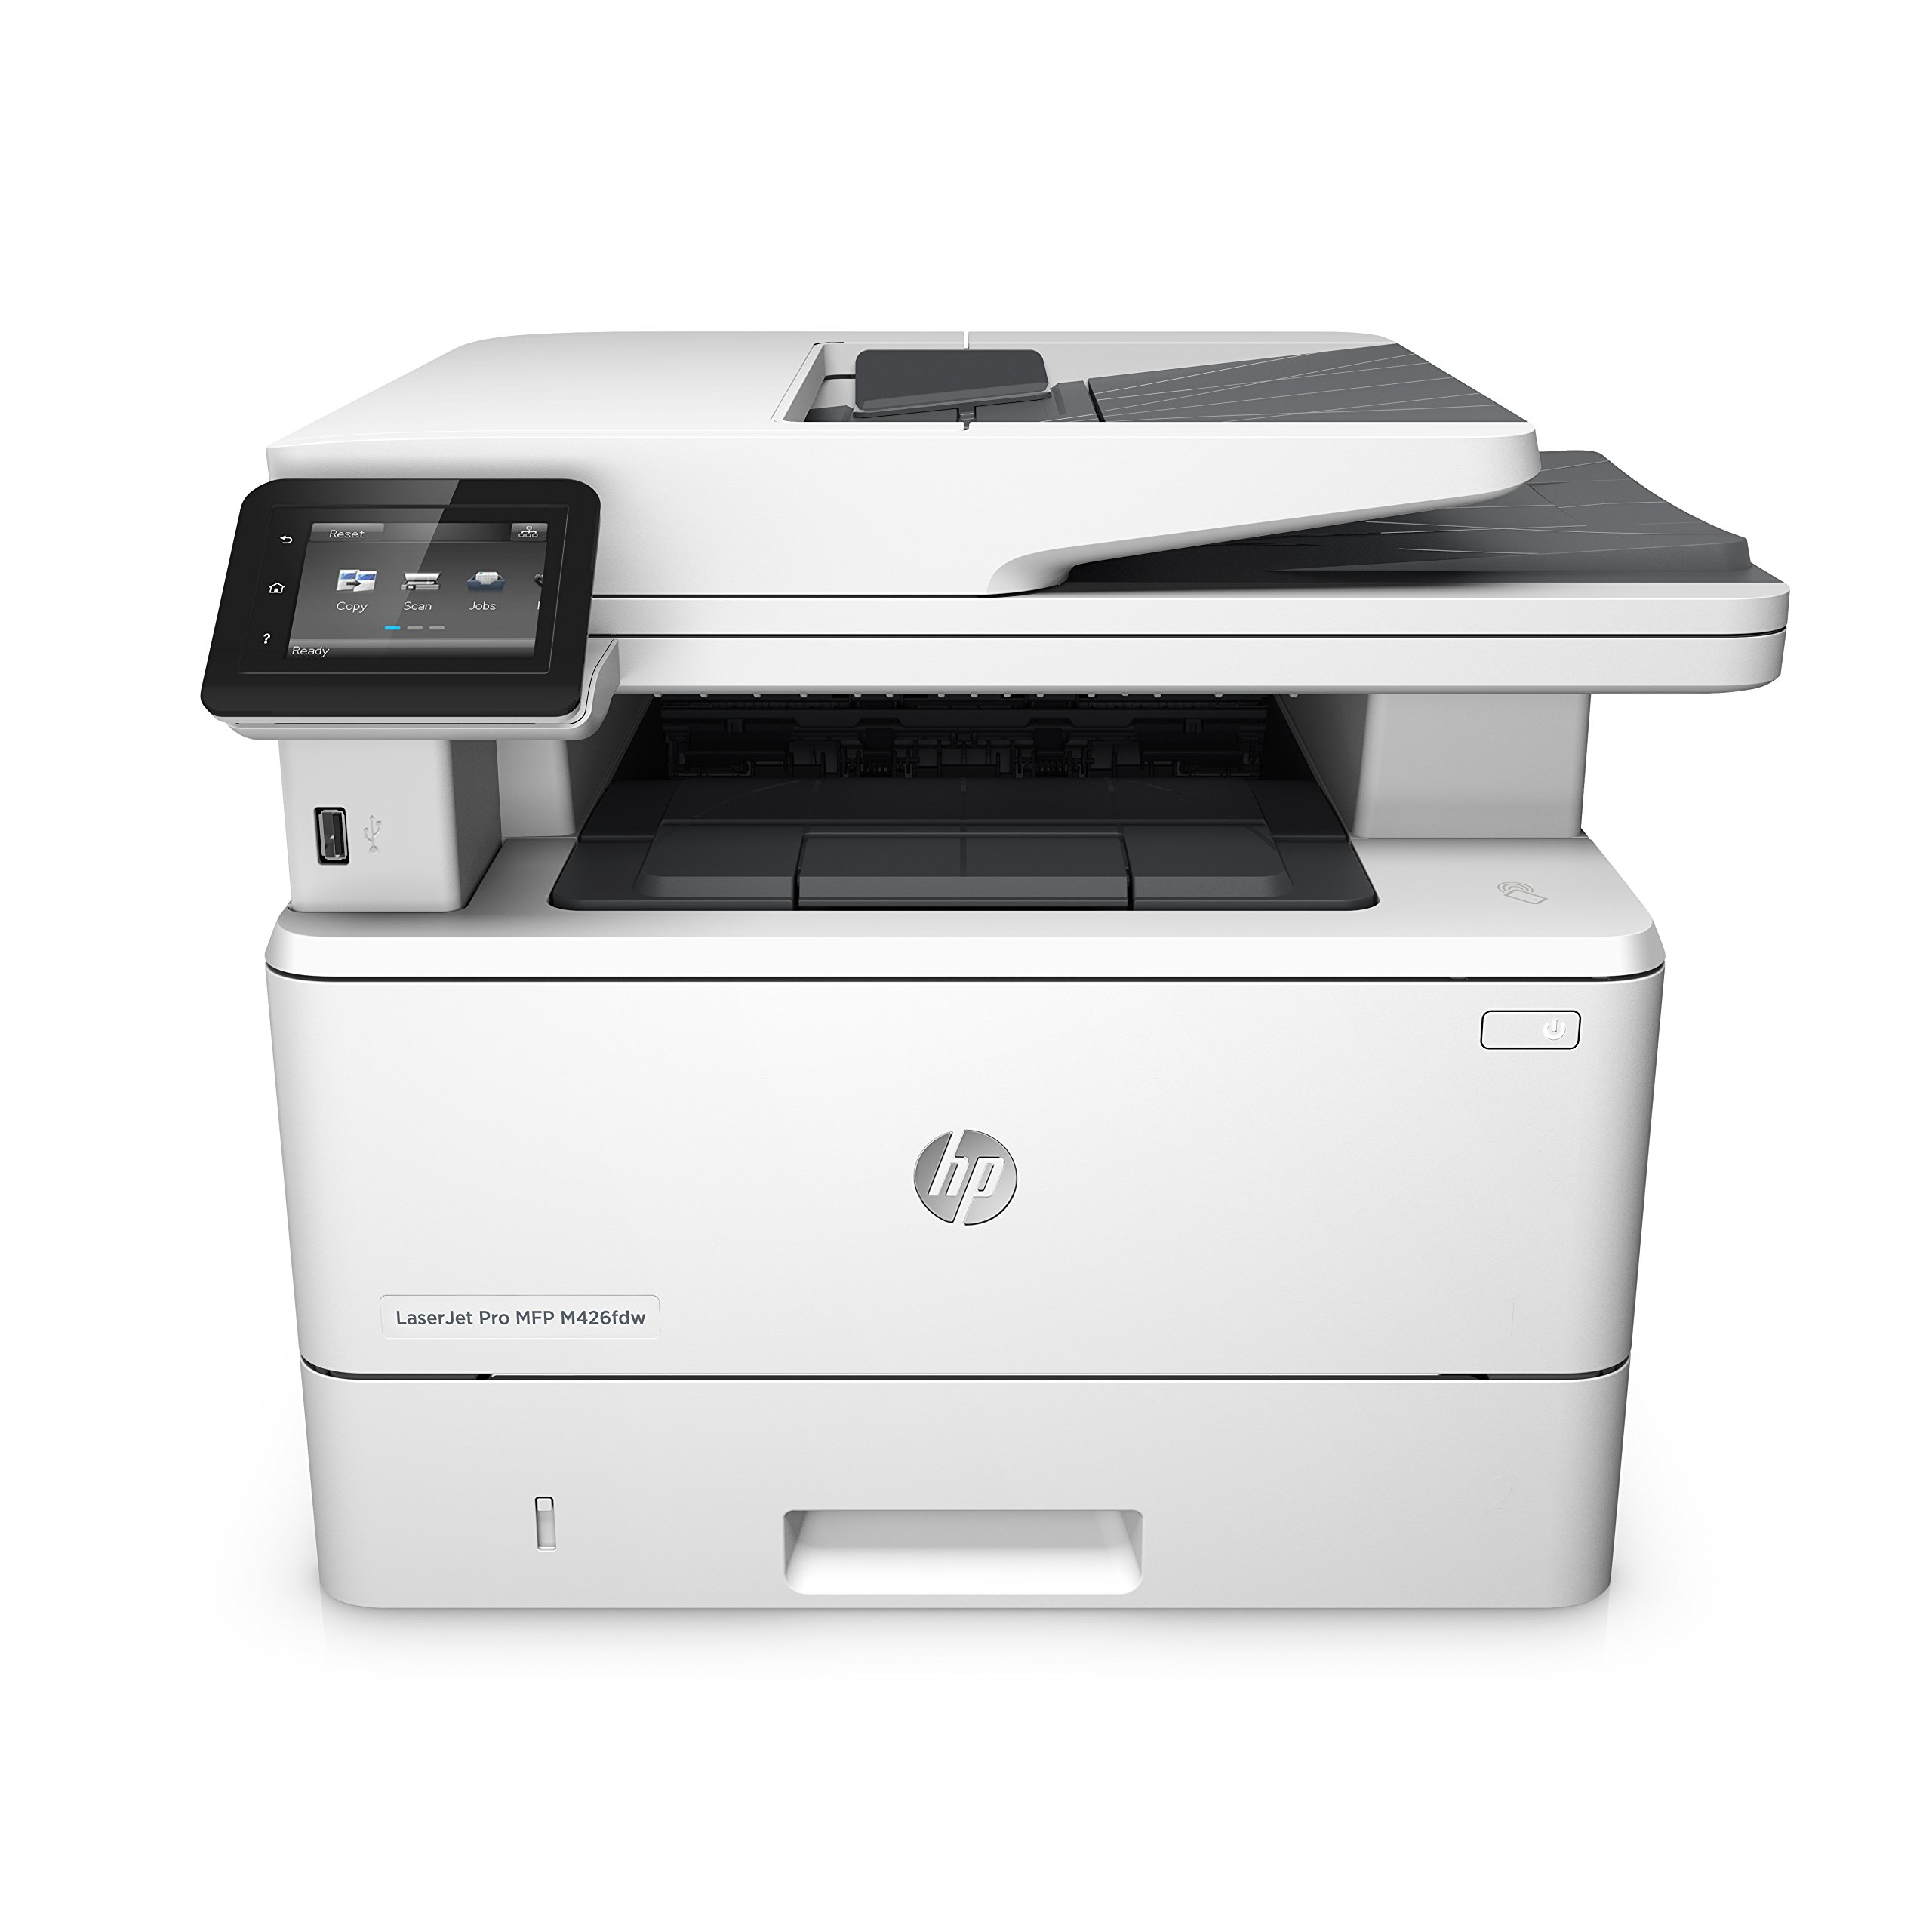 HP LaserJet Pro M426fdw All-in-One Wireless Laser Printer with Double-Sided Printing, Amazon Dash Replenishment ready (F6W15A) by HP